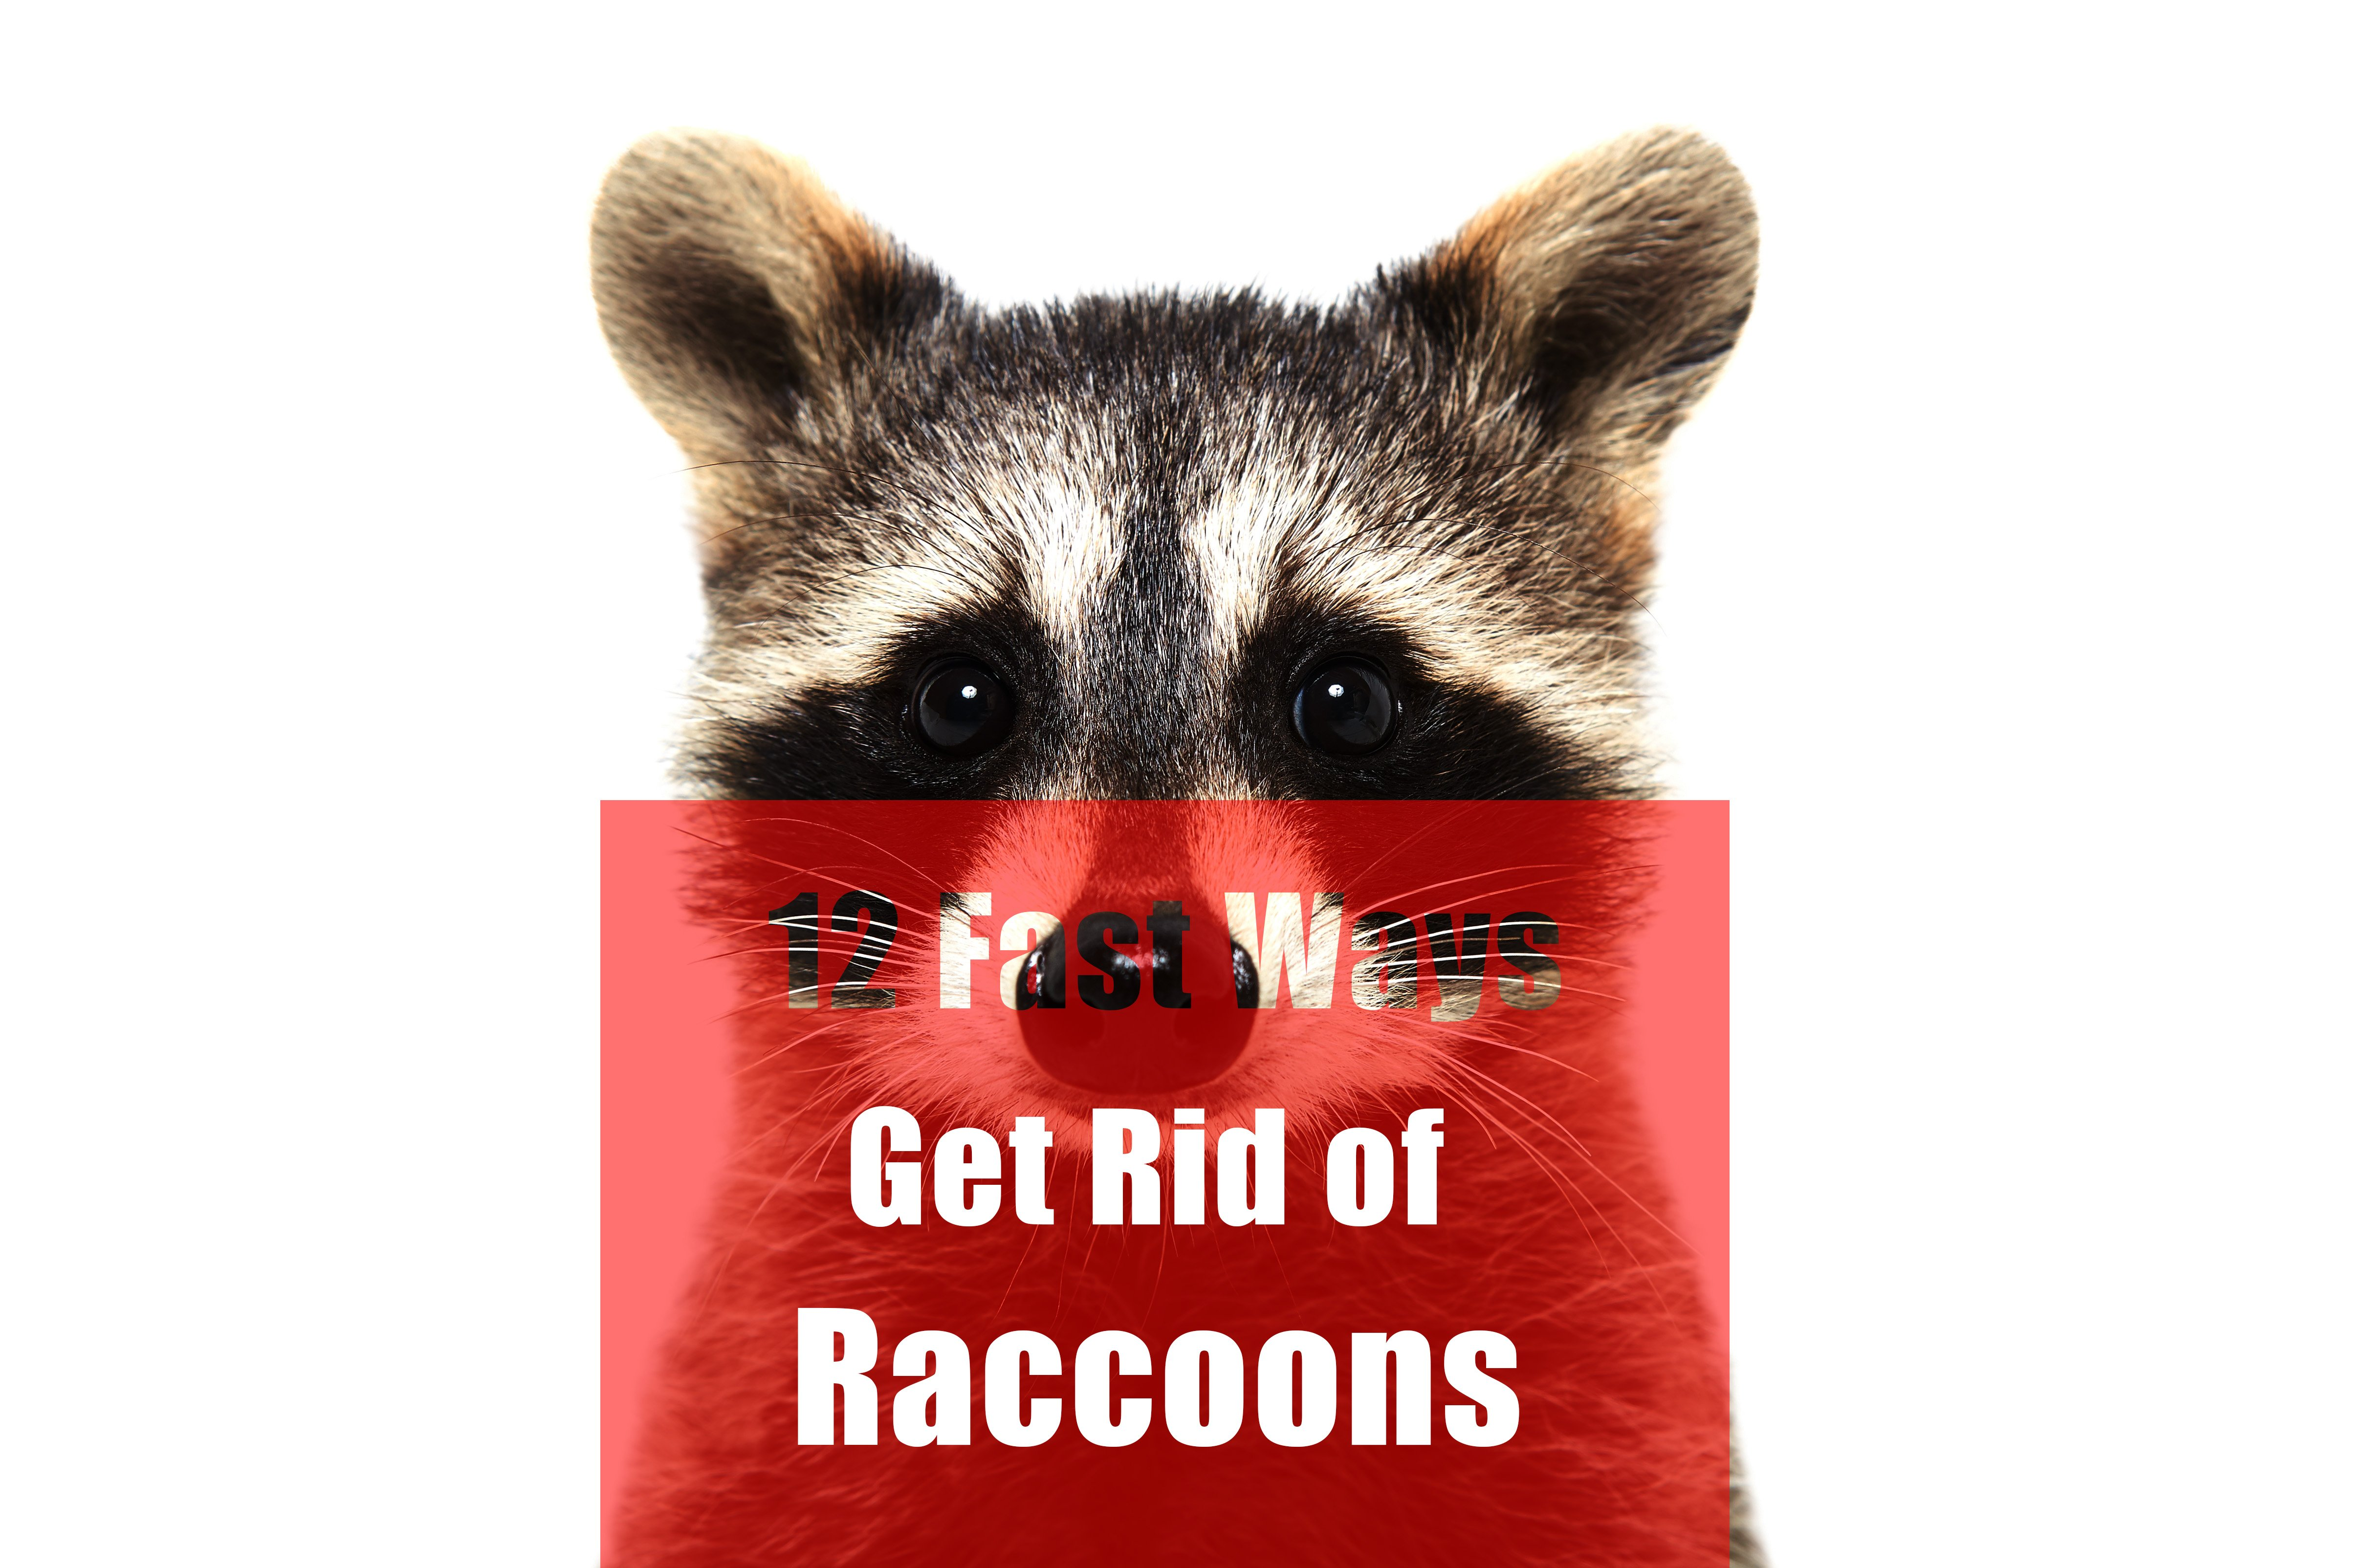 12 fast ways to get rid of raccoons (in attic, yard